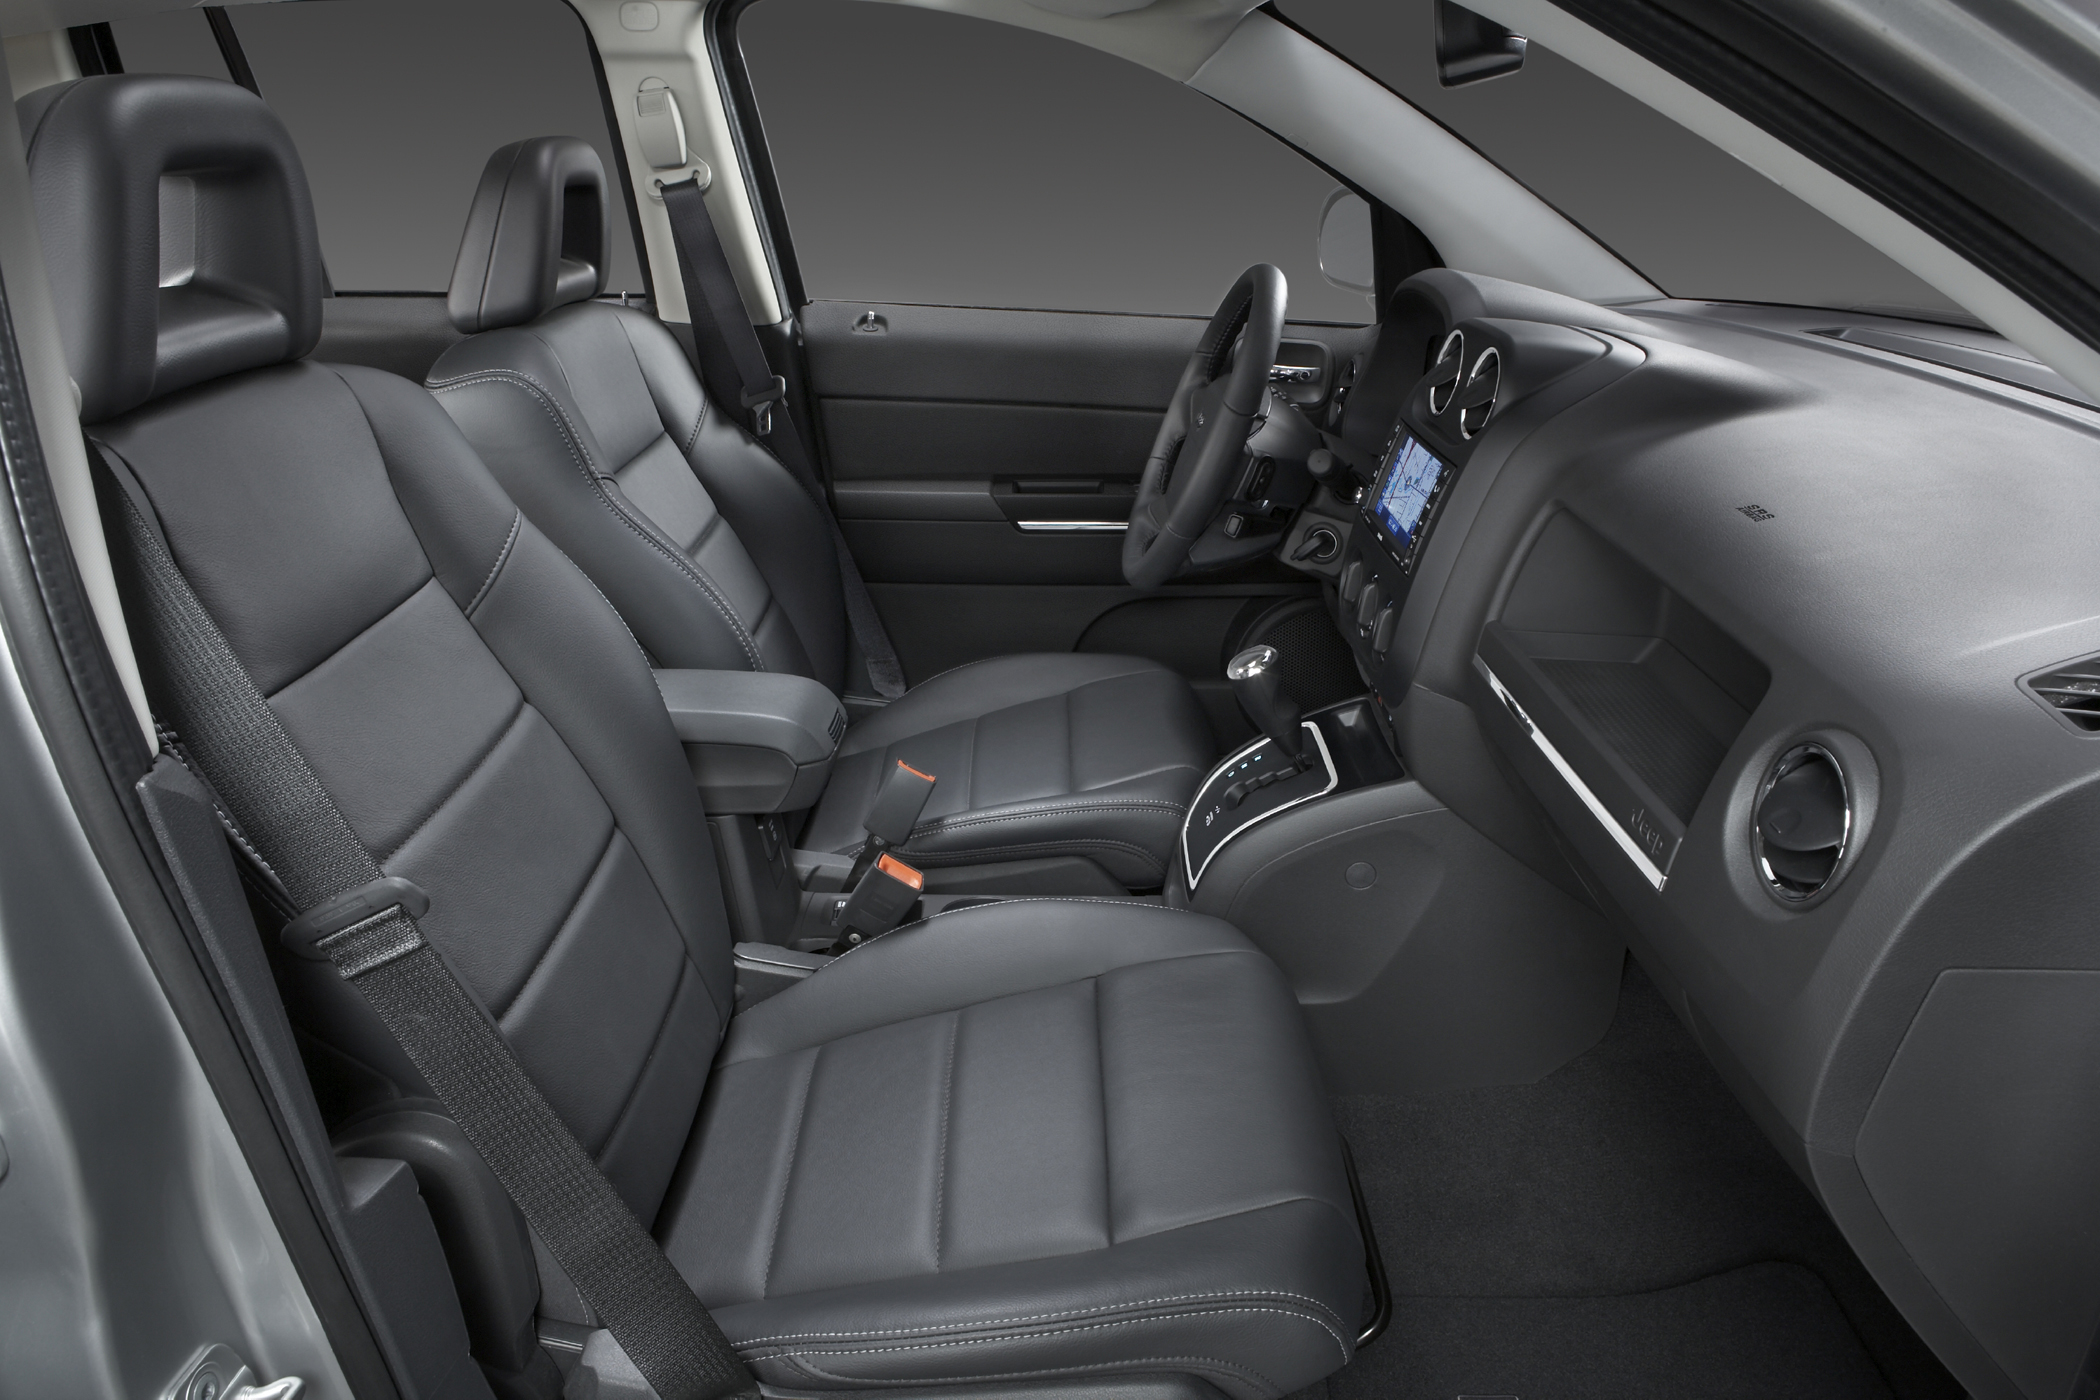 Of Course The Five Penger Comp Being A Jeep Offers Clic Utility Flexibility And Control Command Seating Gives Drivers Confidence Fold Flat